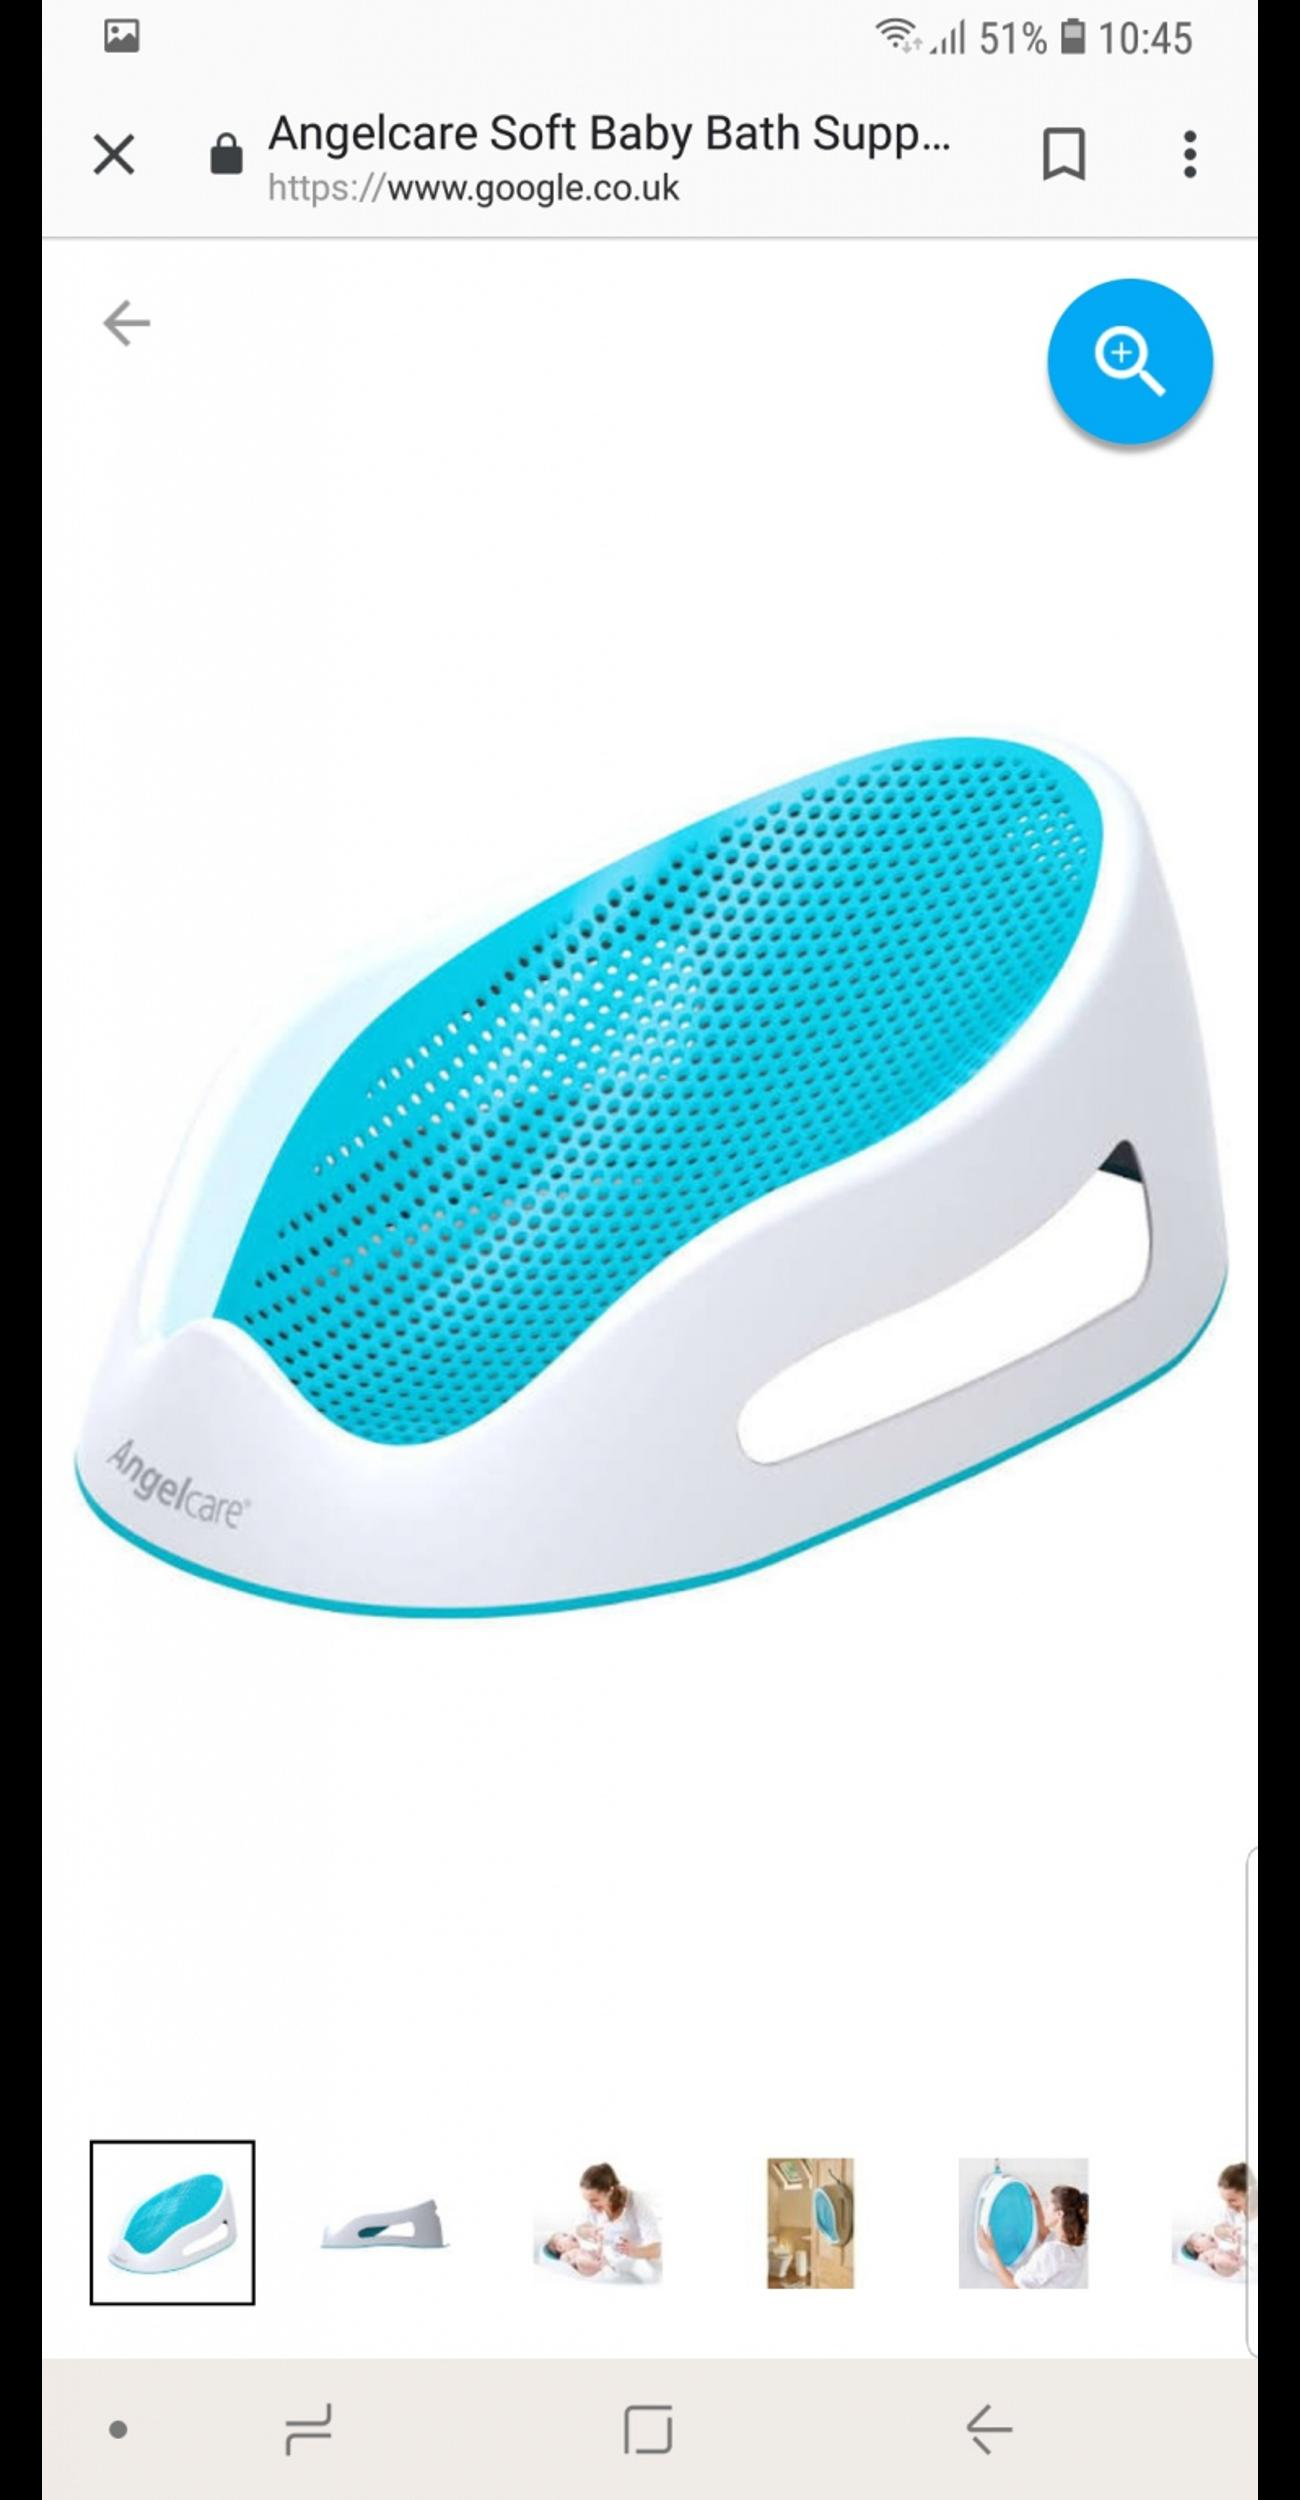 cc2cc29912d1 Angelcare bath support in LS10 Leeds for £10.00 for sale - Shpock